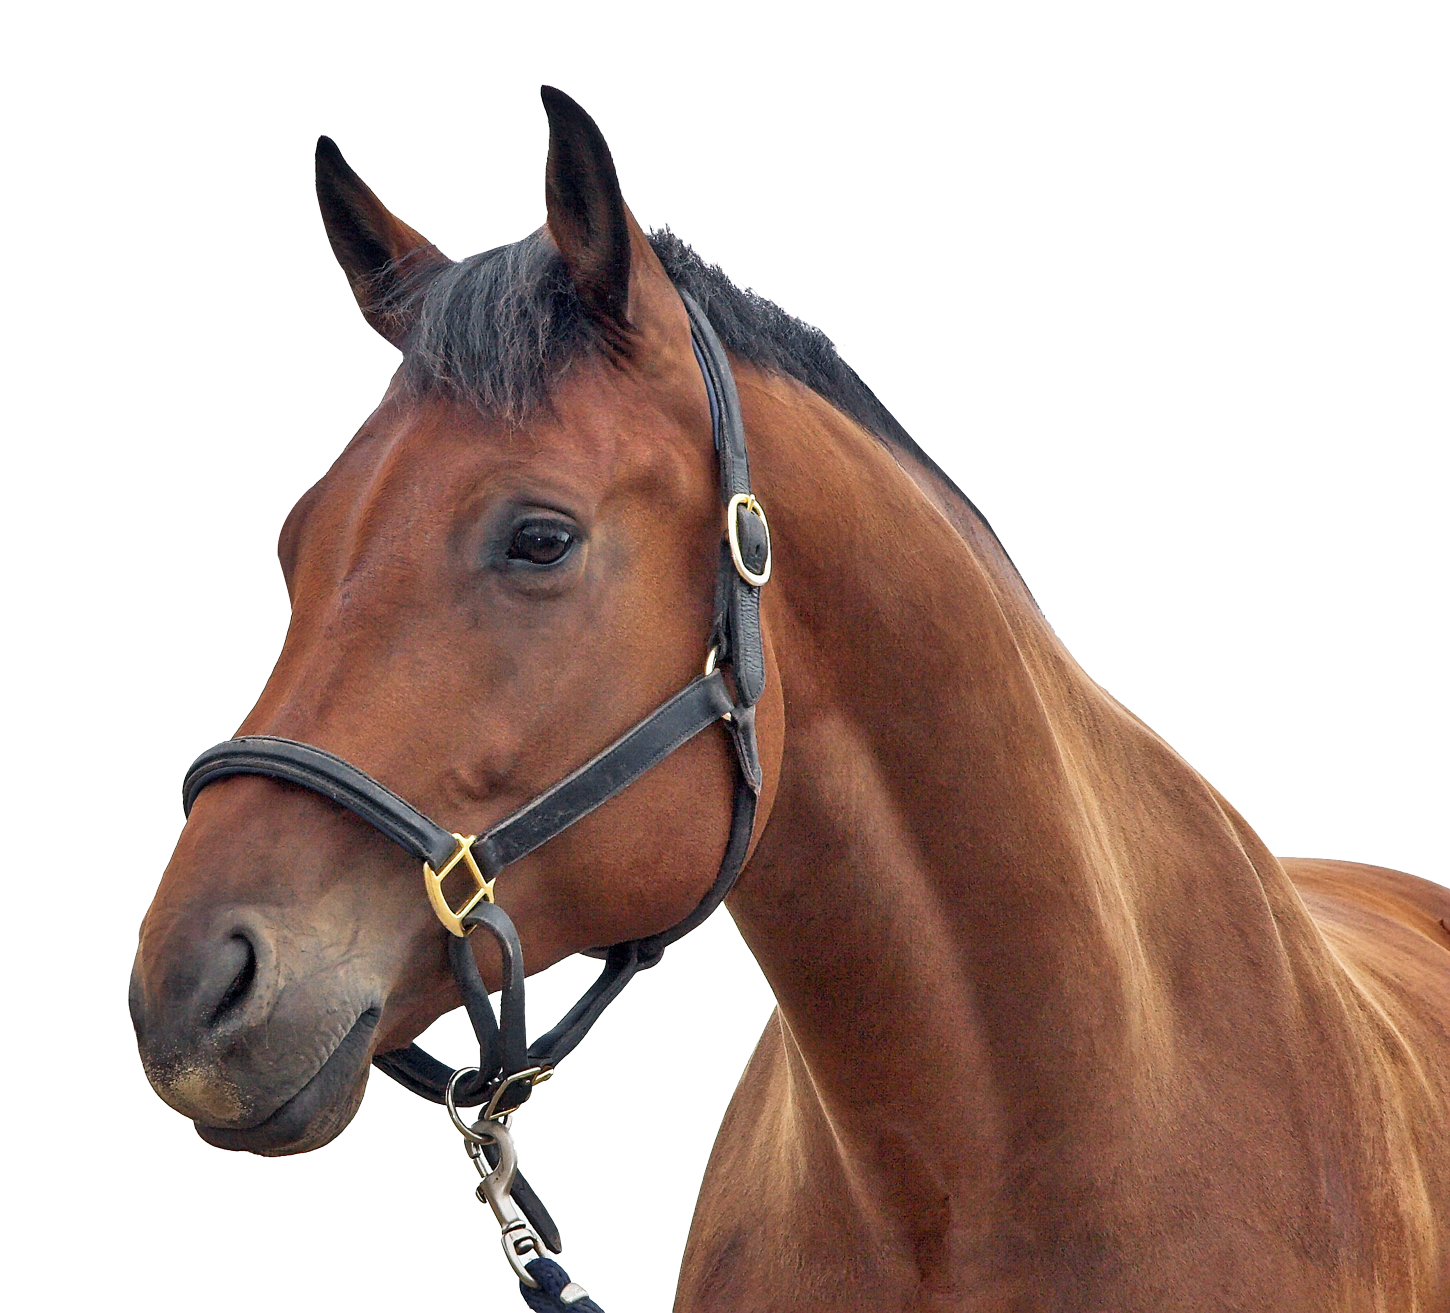 Horse Transparent PNG Image - Horse PNG